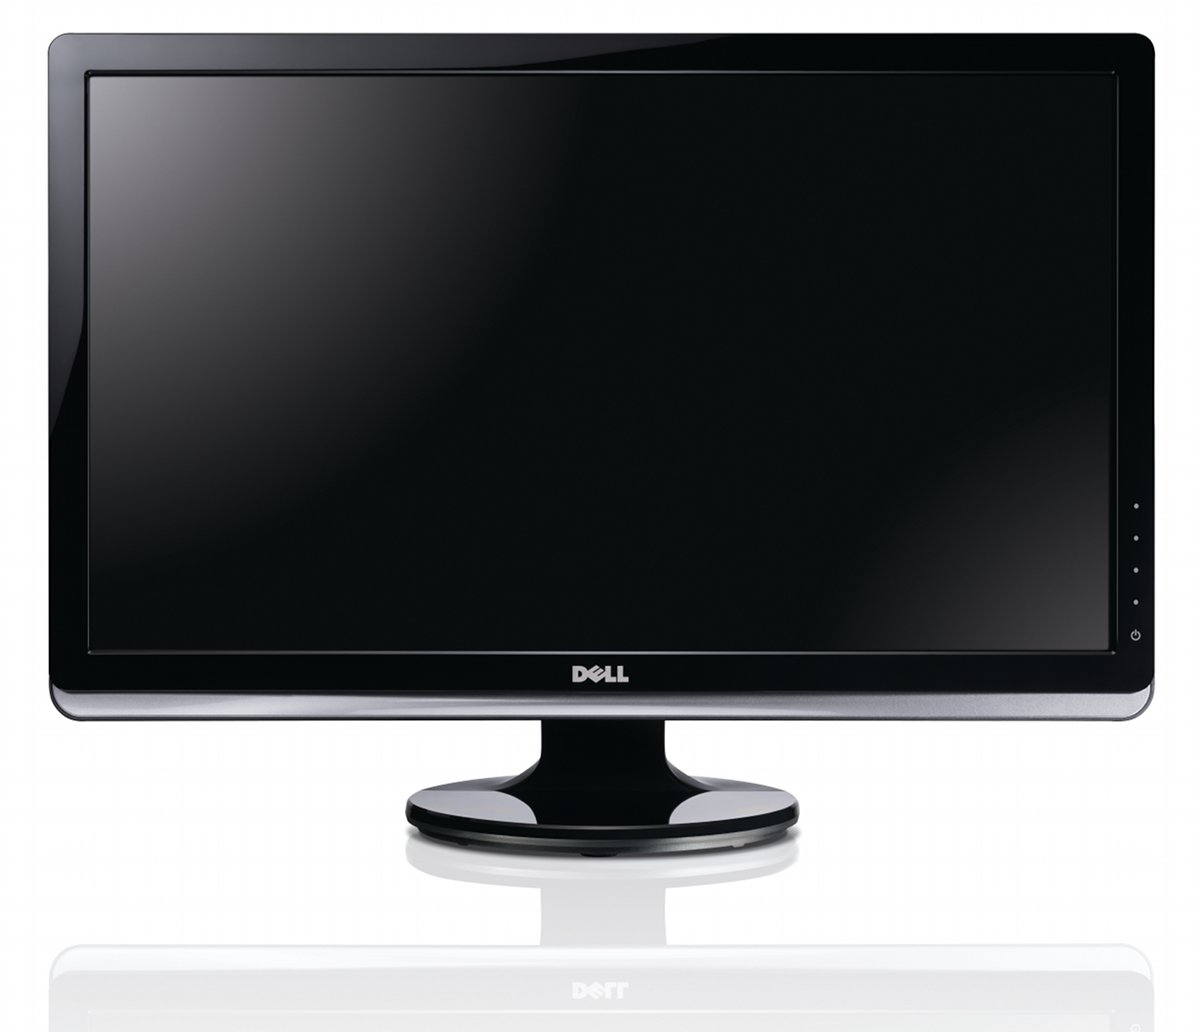 amazoncom dell st2321l 23inch screen led monitor